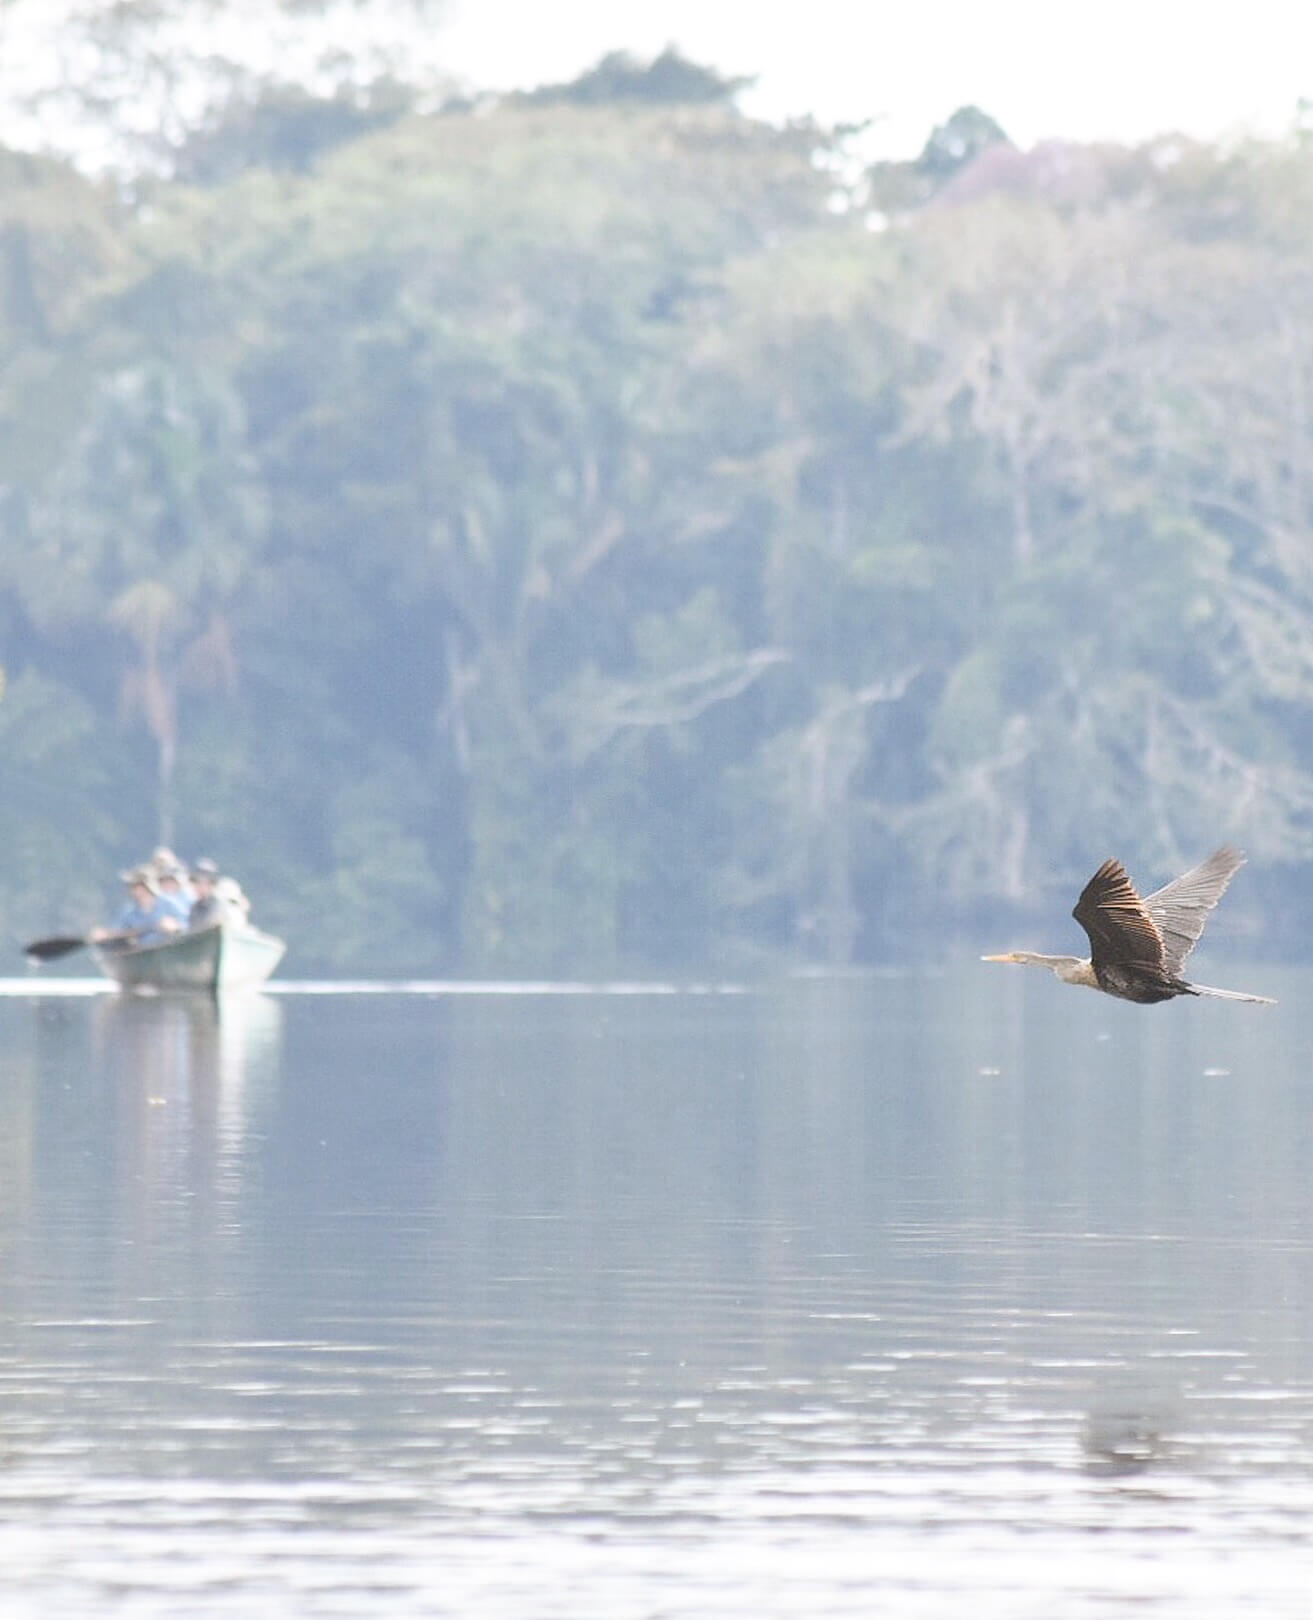 A brown herron bird caught mid-flight, with a canoe full of tourists in the background